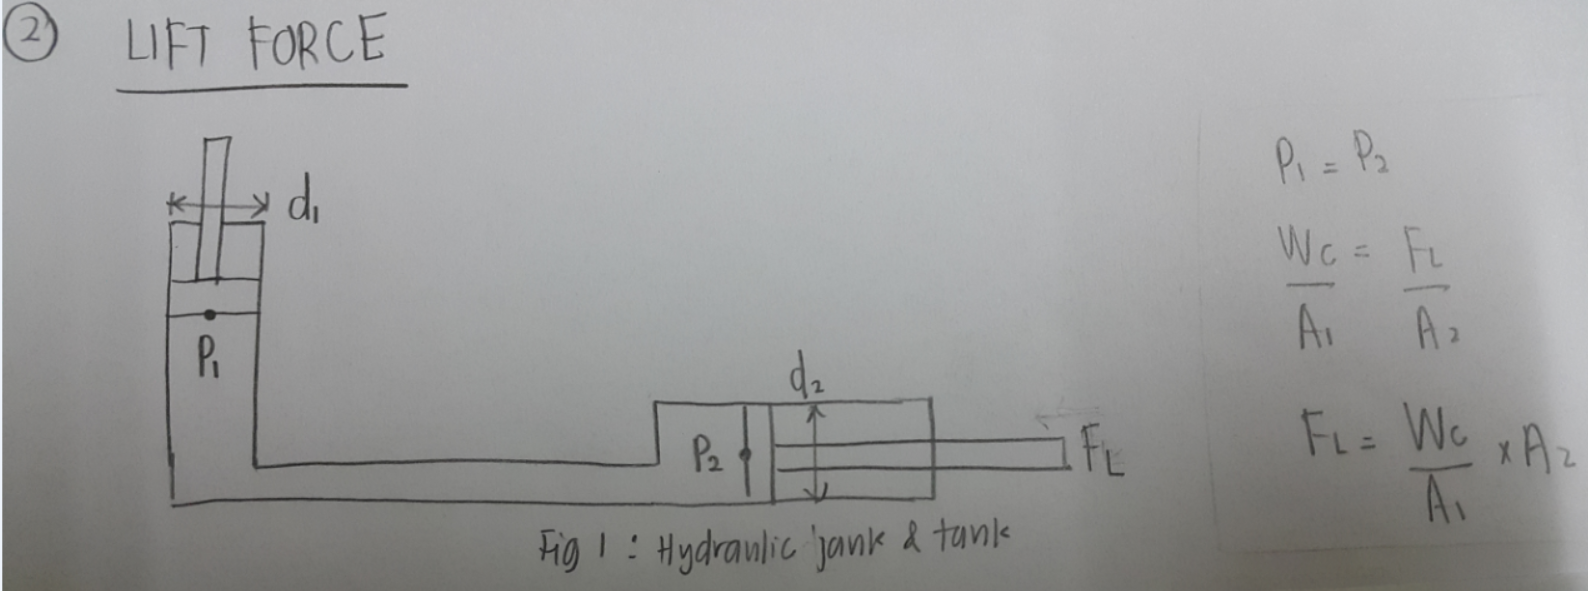 Design of car jack - Fc Force From Weight Of Car